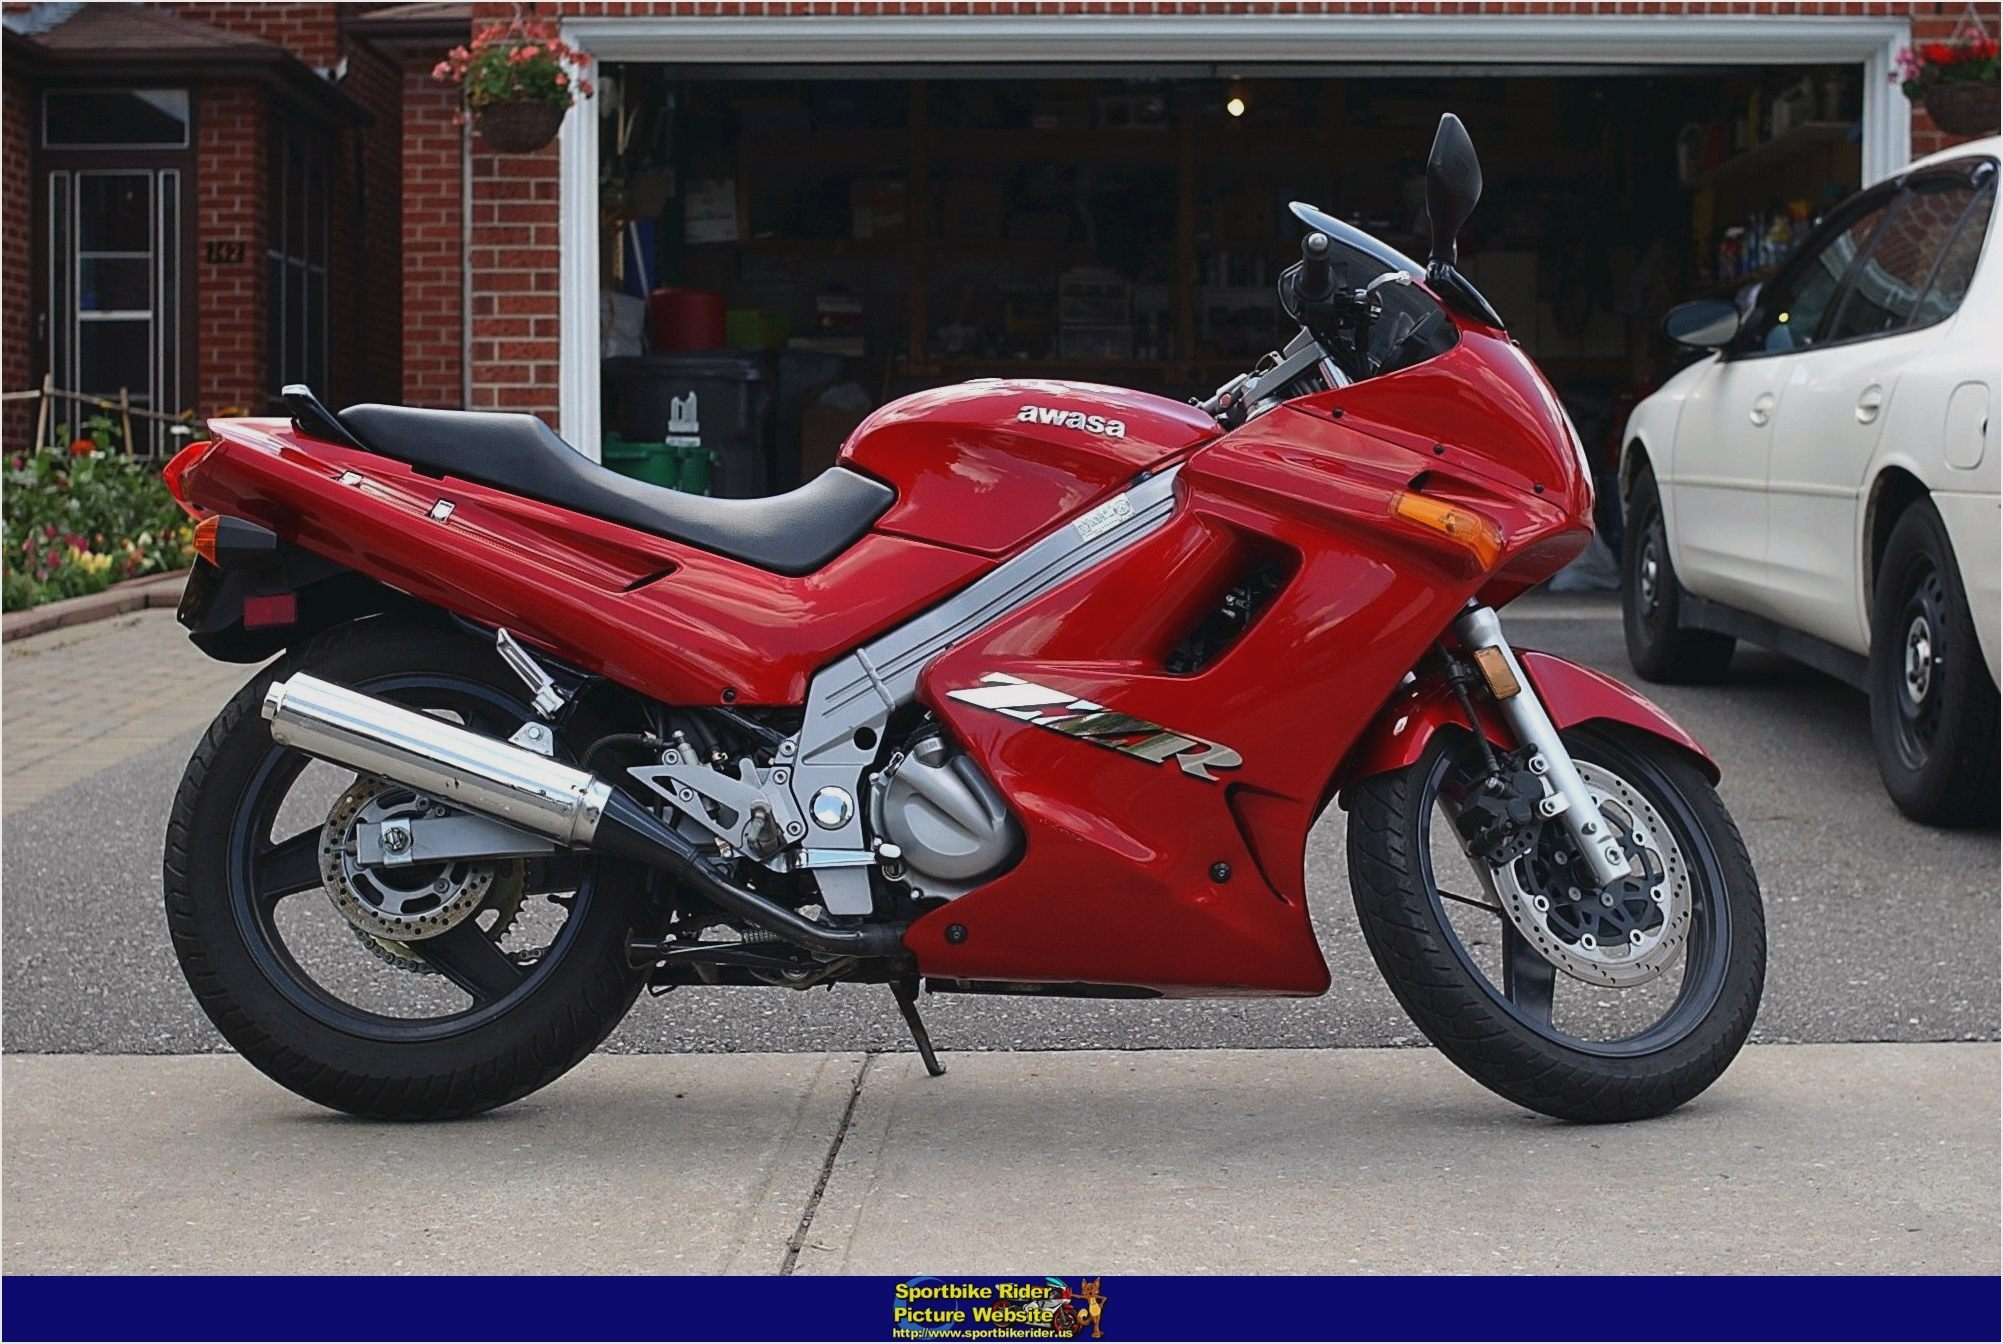 Motorcycle Kawasaki ZZR 250: photos, review, specifications, owner reviews 98